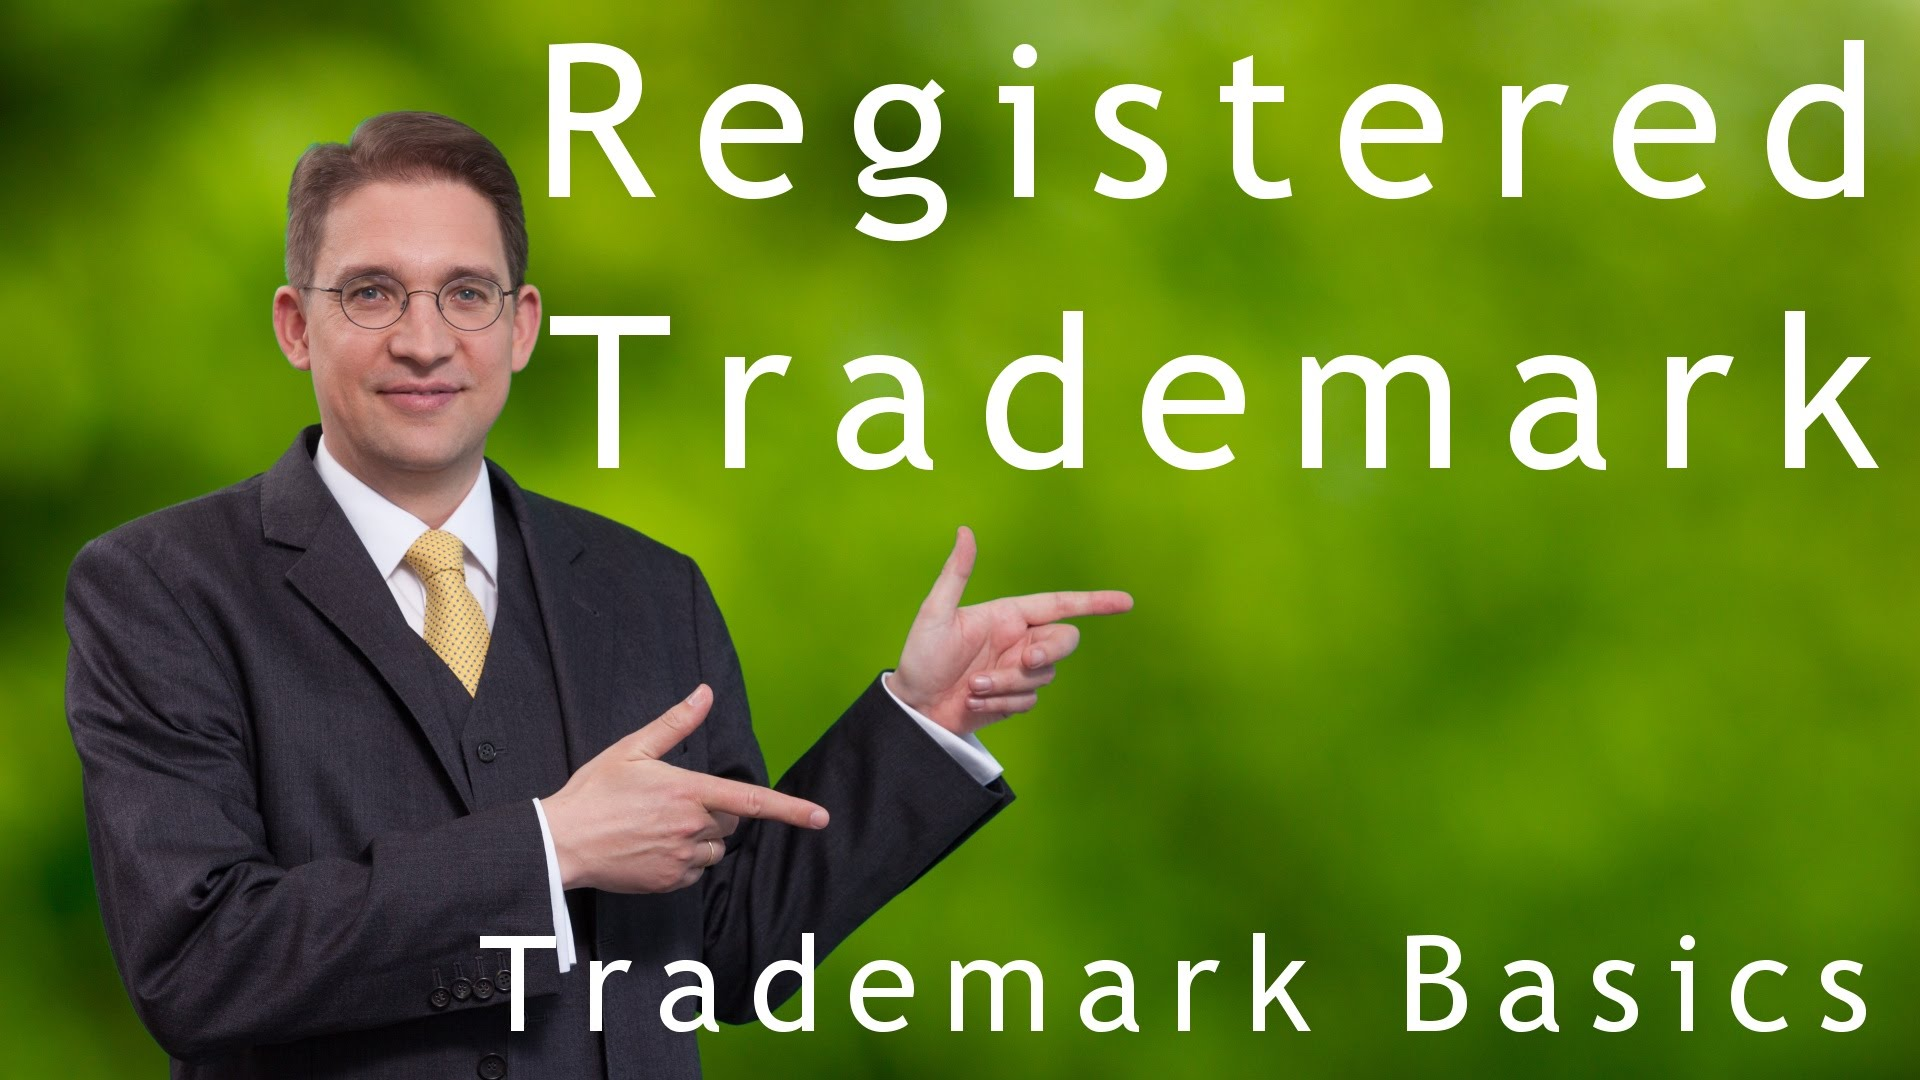 Artilce: Trademark Law in India: Registration, Enforcement and Protection